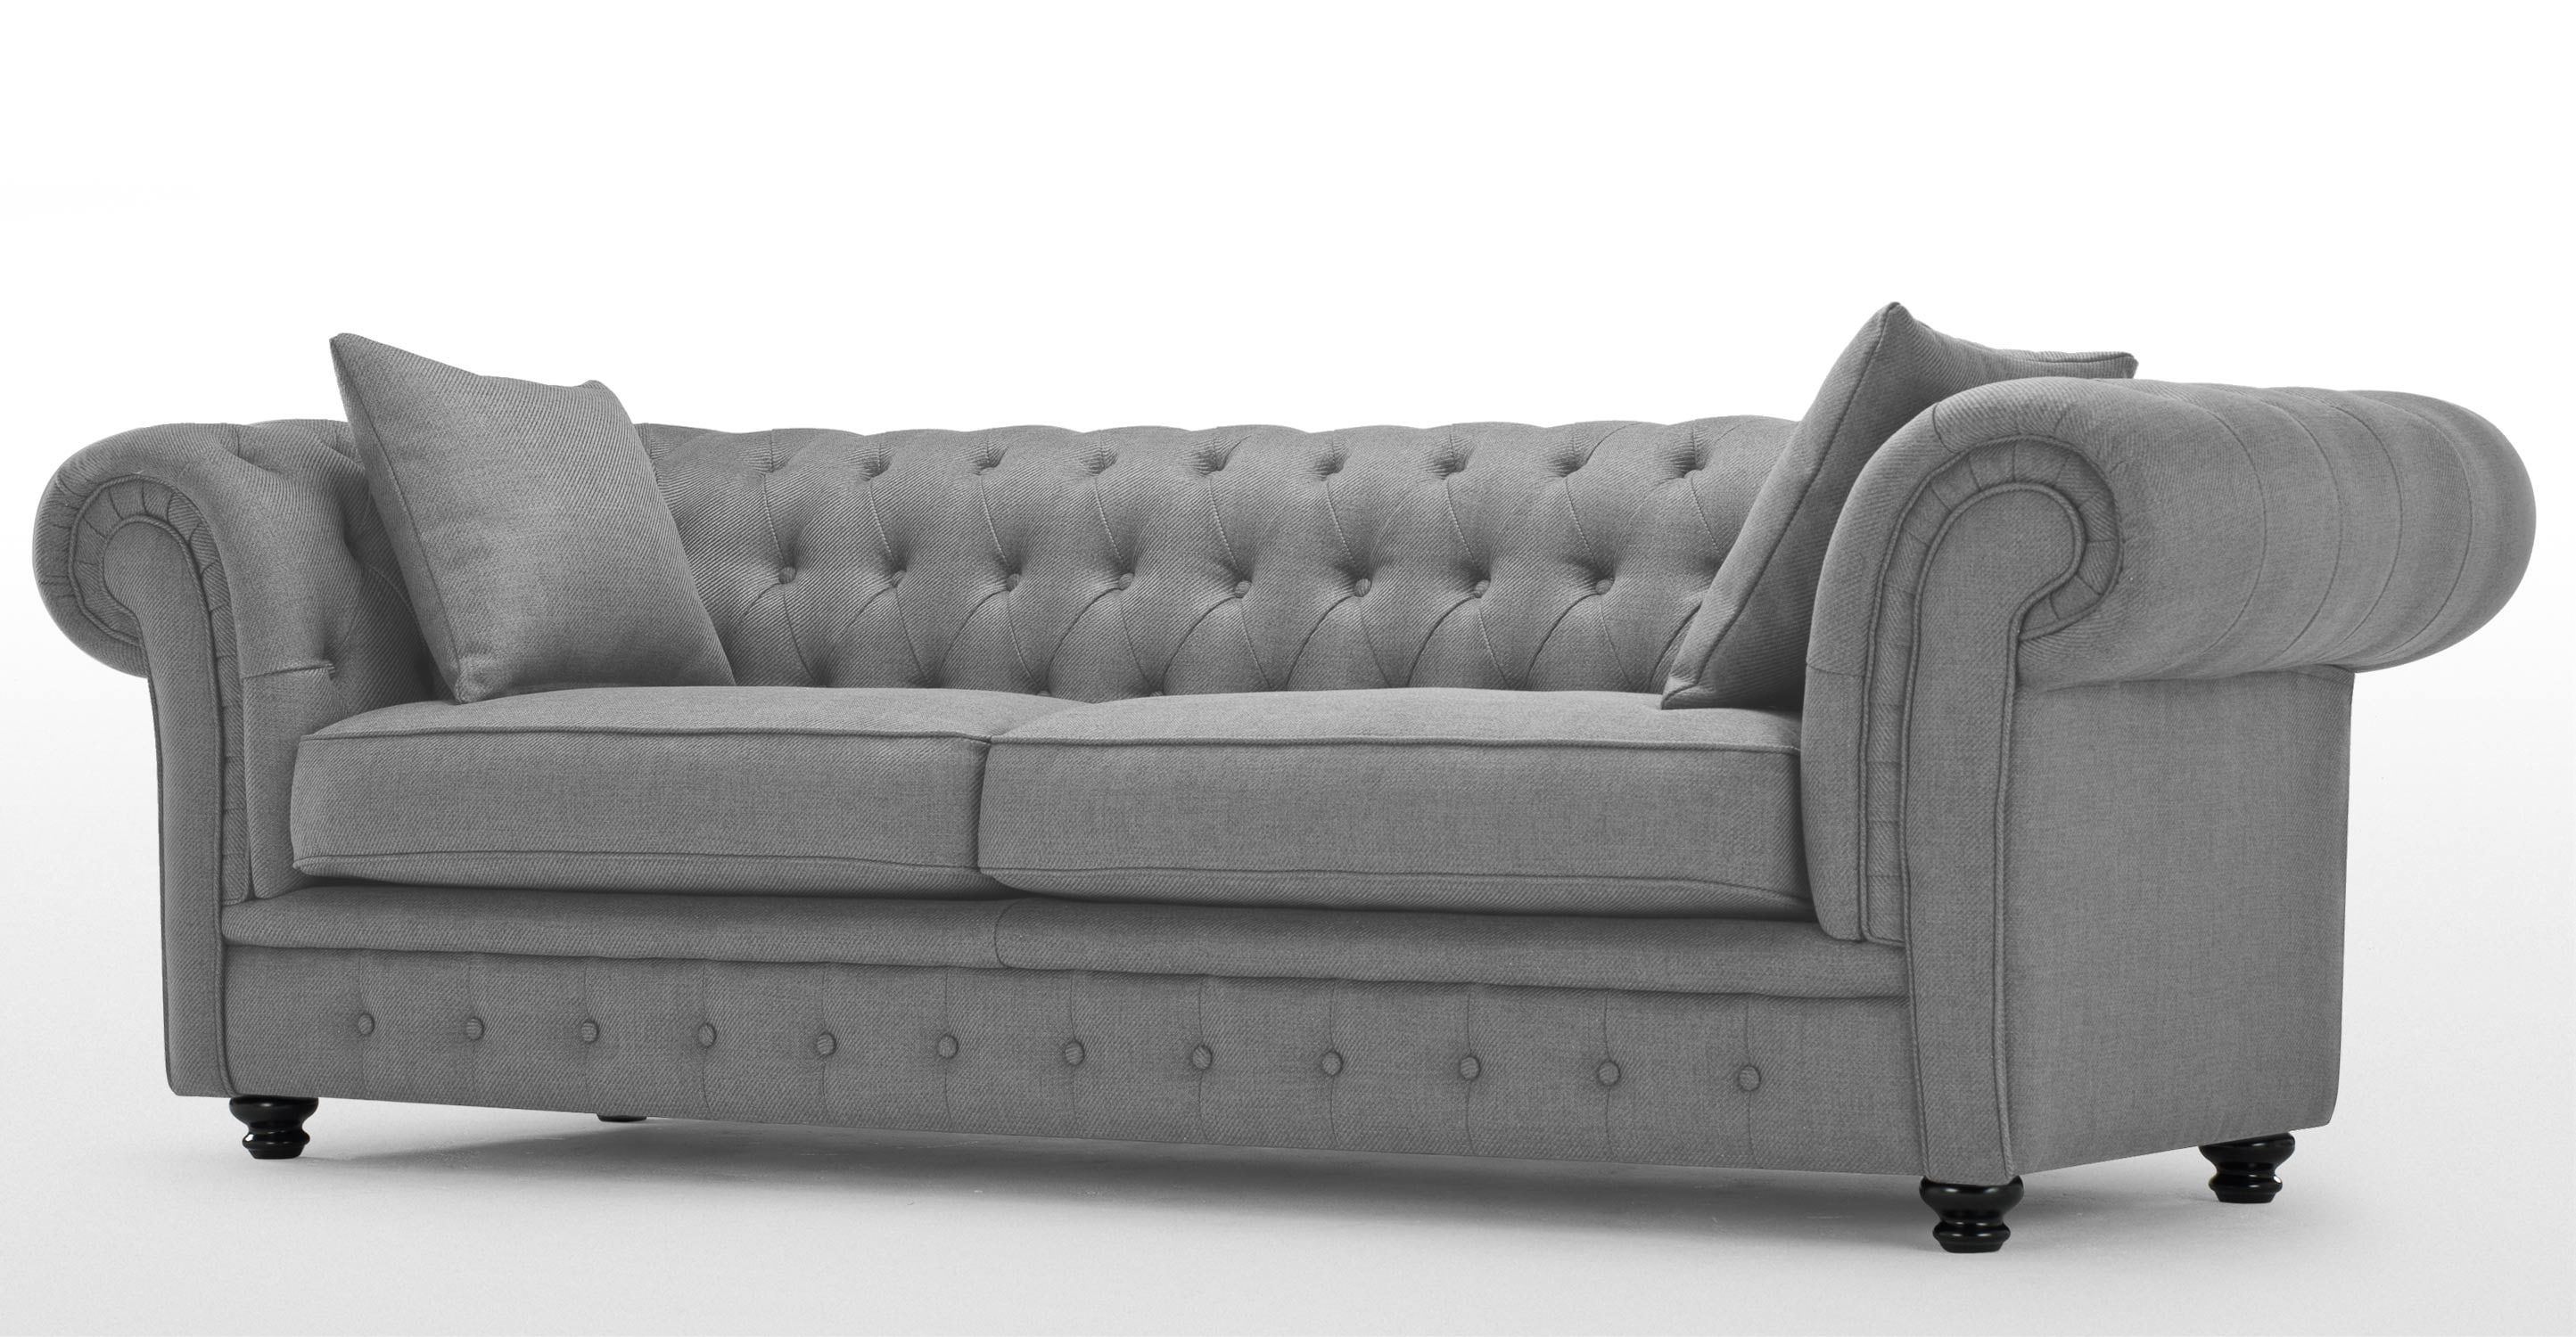 Mayson Chesterfield 3 Seater Sofa In Harrier Grey Made 799 Living Room Pinterest Rooms And Drawing